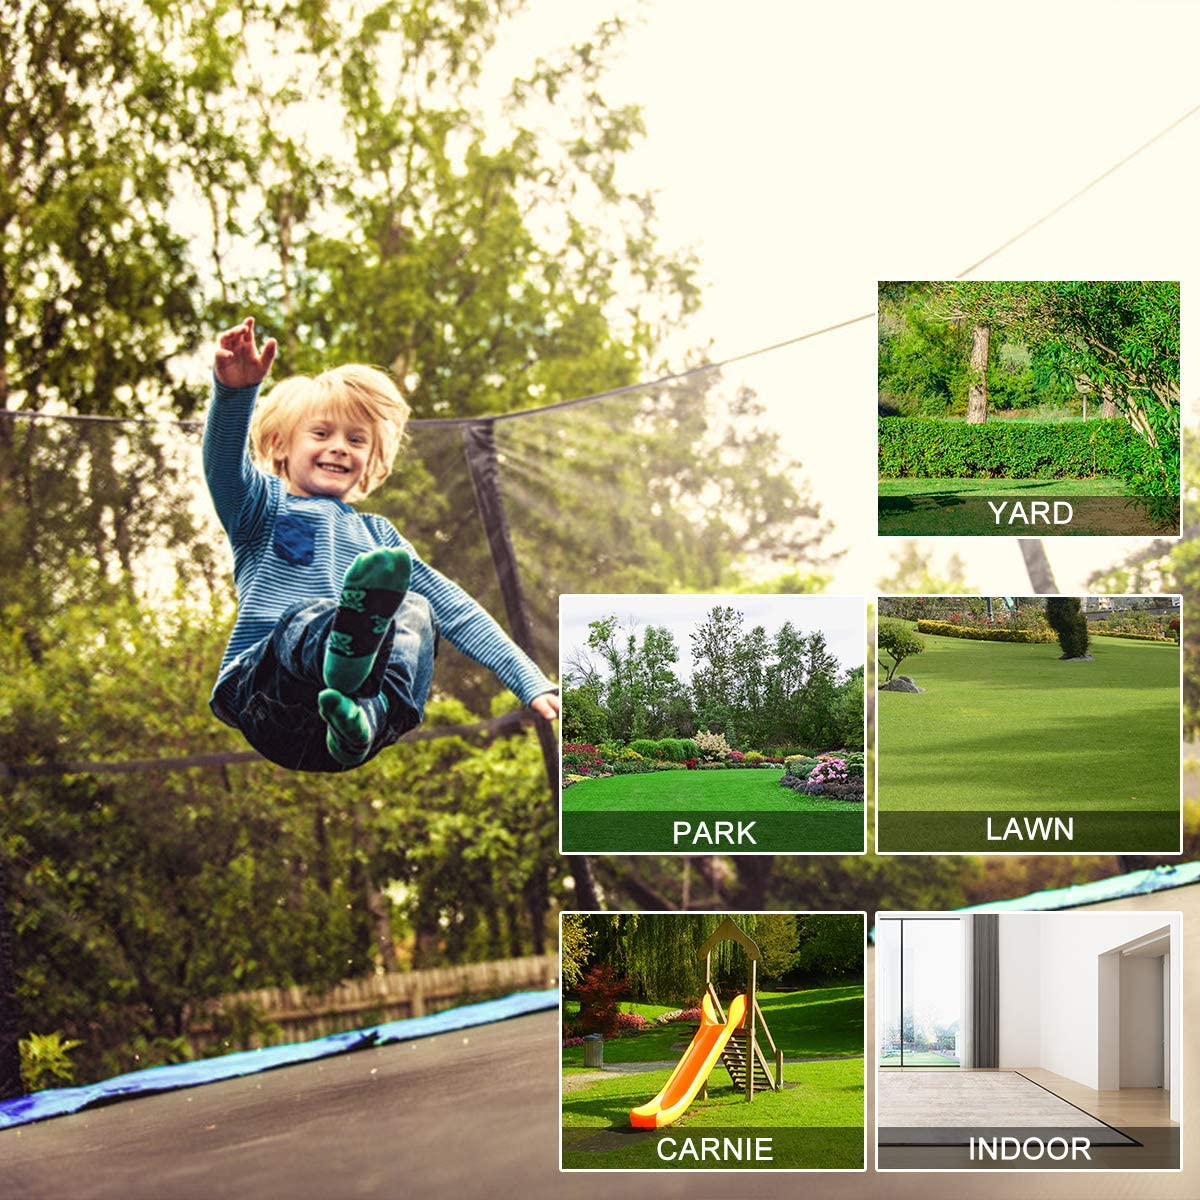 This is an image of Giantex 14Ft Trampoline With Enclosure. The image shows where users can placed this trampoline. The options are yard, park, lawn, carnie, and even indoor.